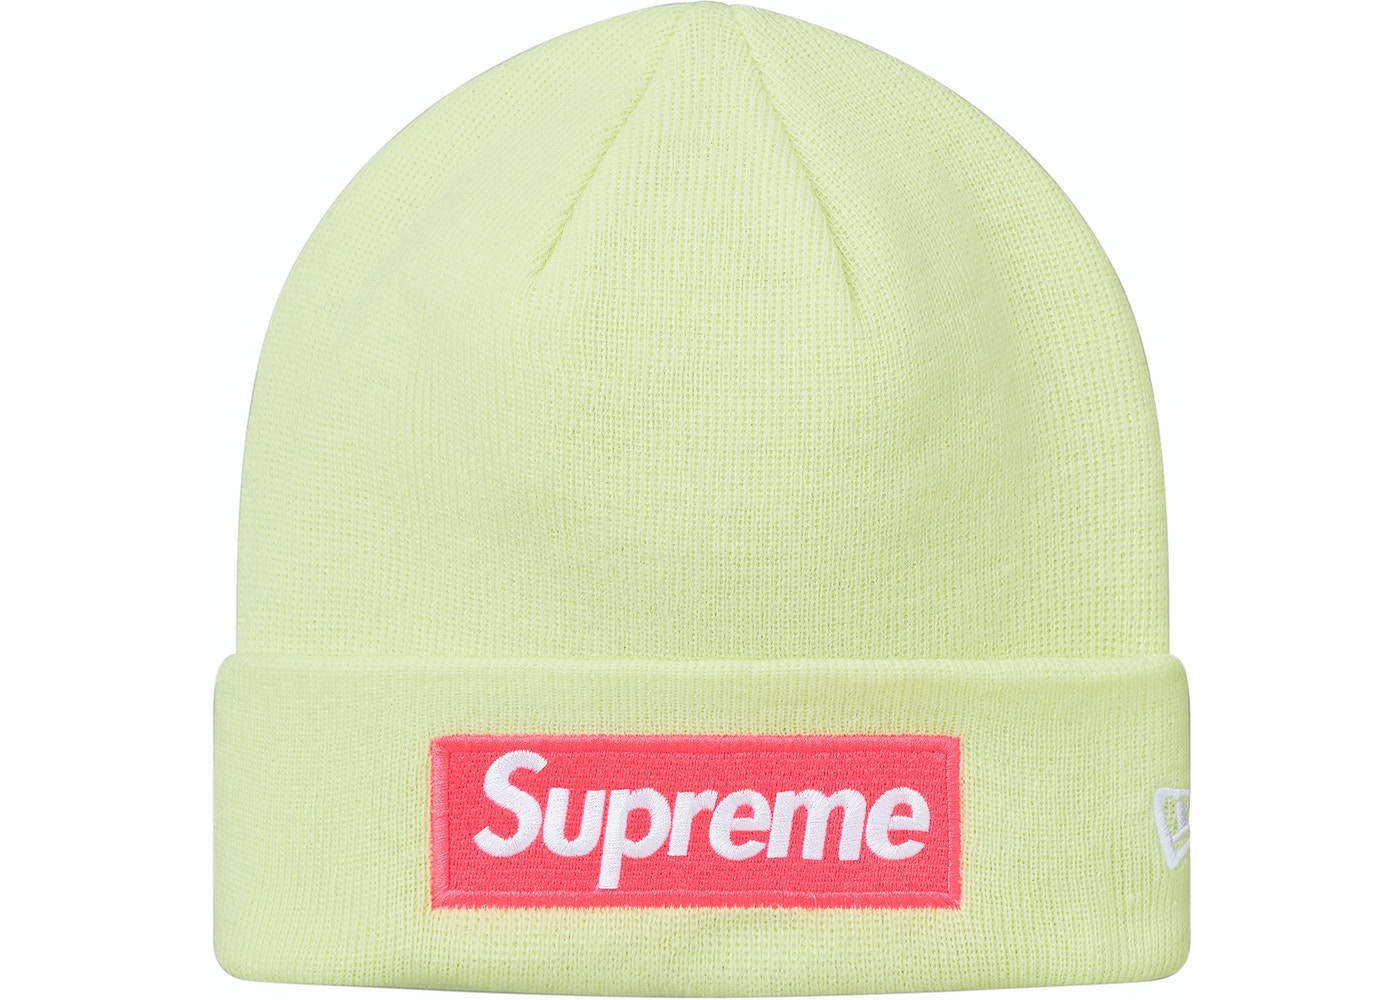 c91edbe1ea38b Supreme New Era Box Logo Beanie (FW17) Pale Lime - FW17